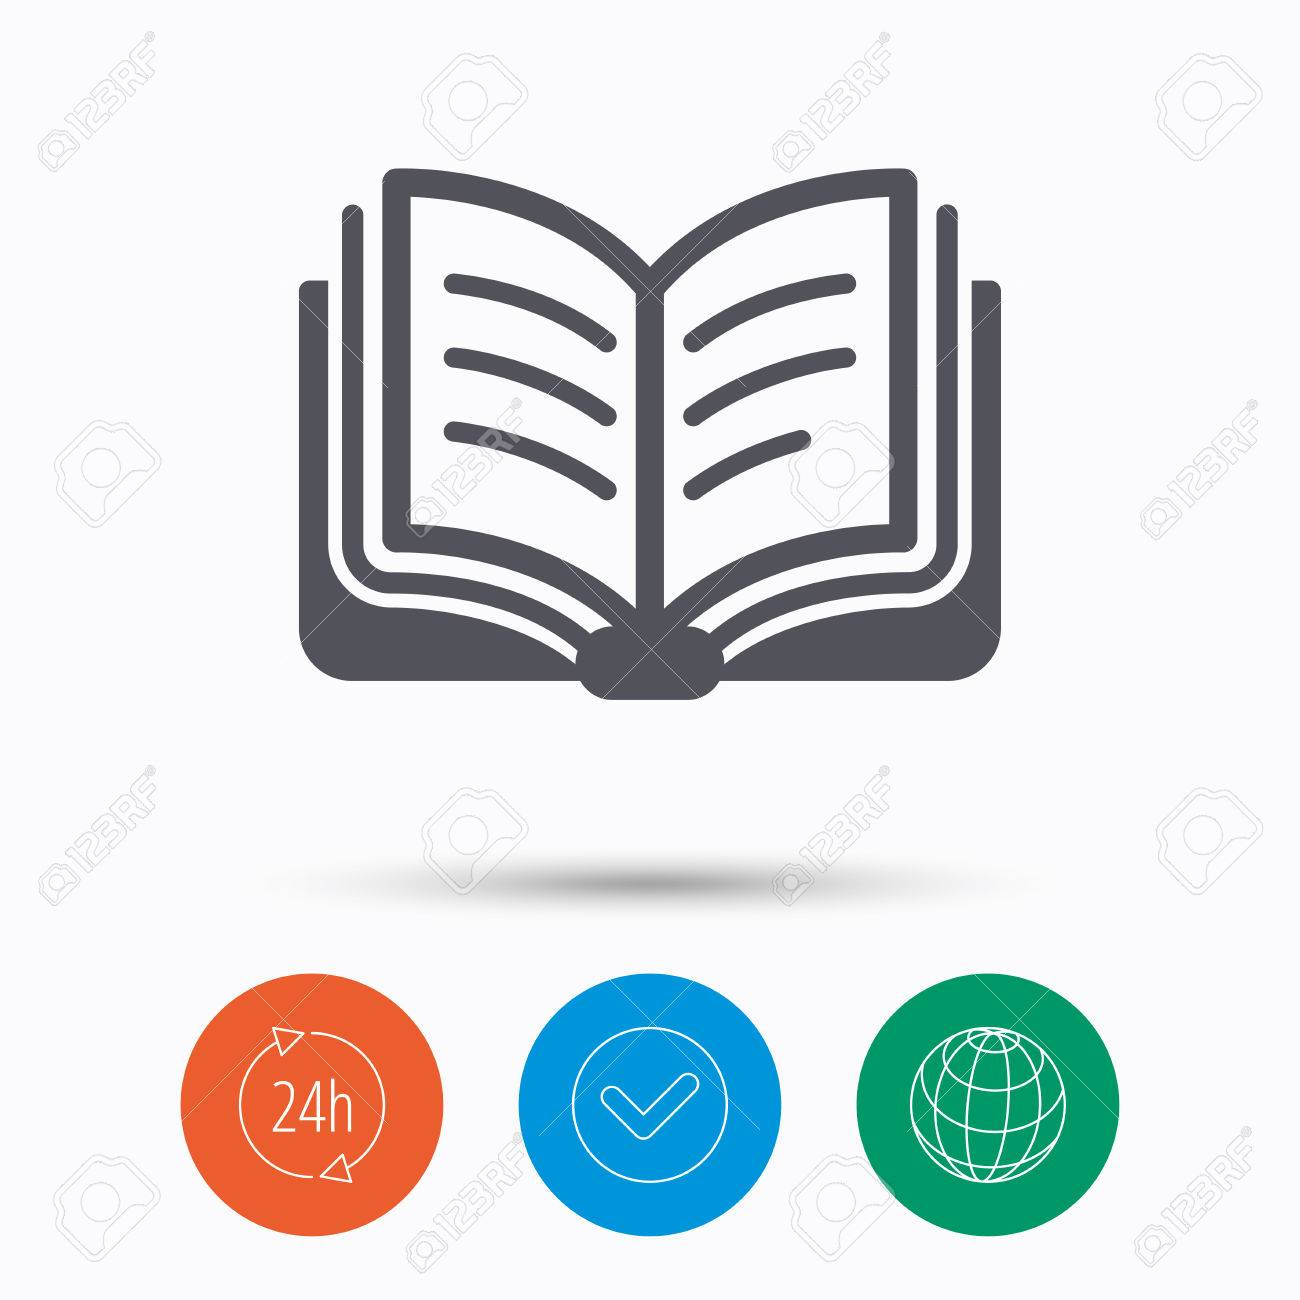 book icon study literature sign education textbook symbol  study literature sign education textbook symbol check tick 24 hours